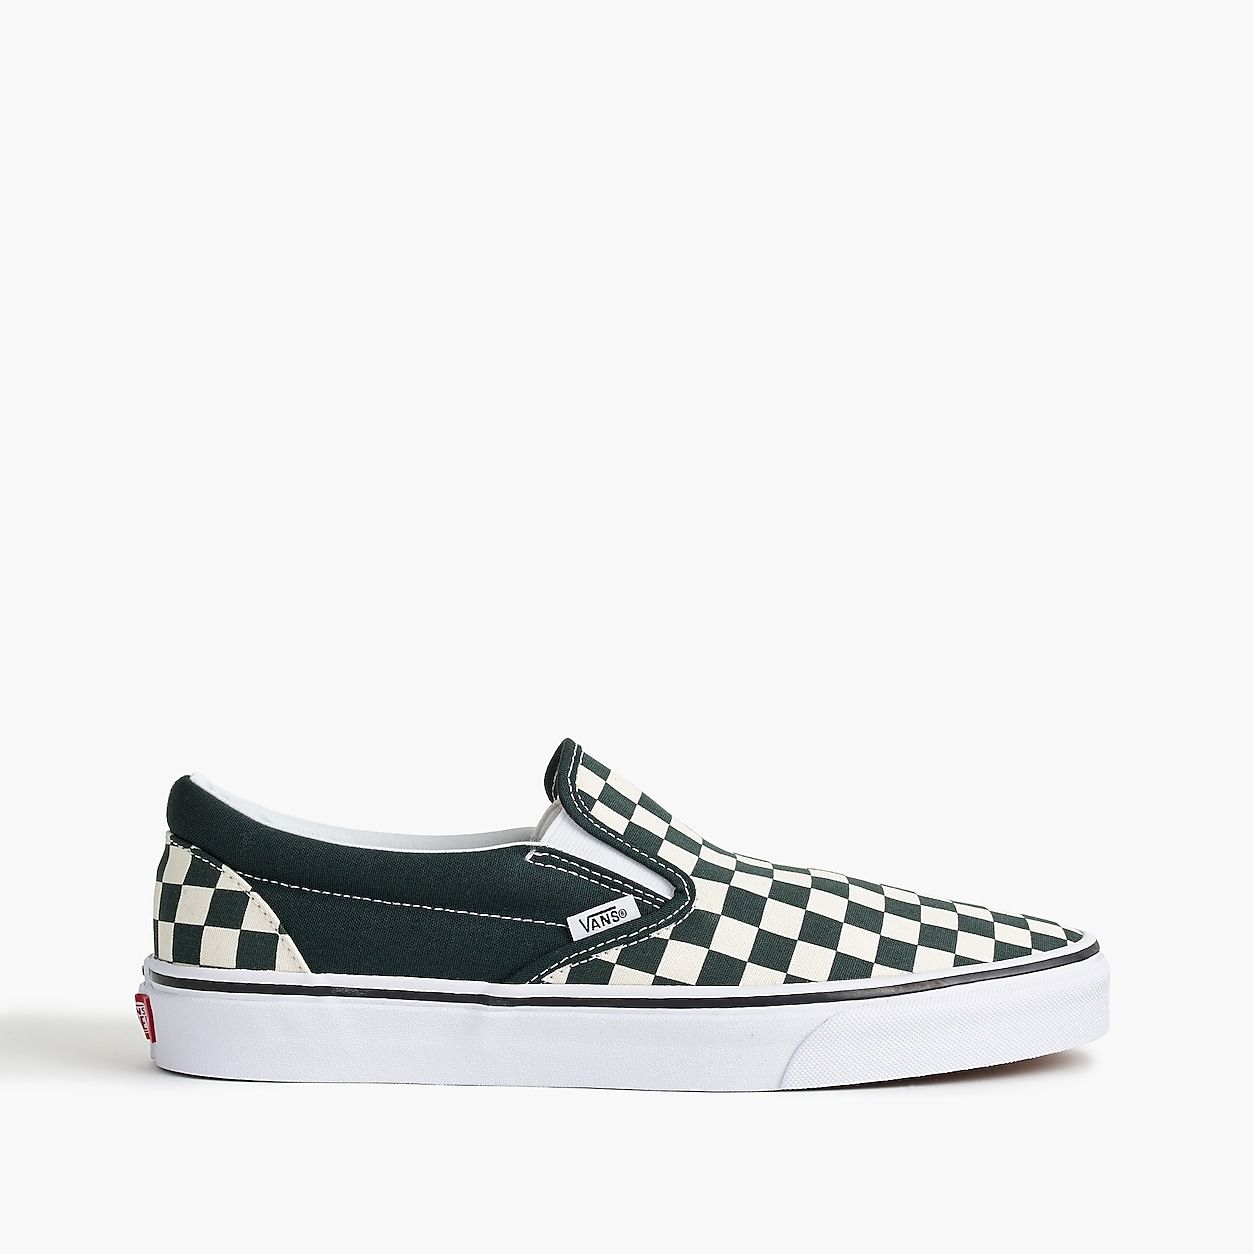 Vans Pro Skate available from Surfdome